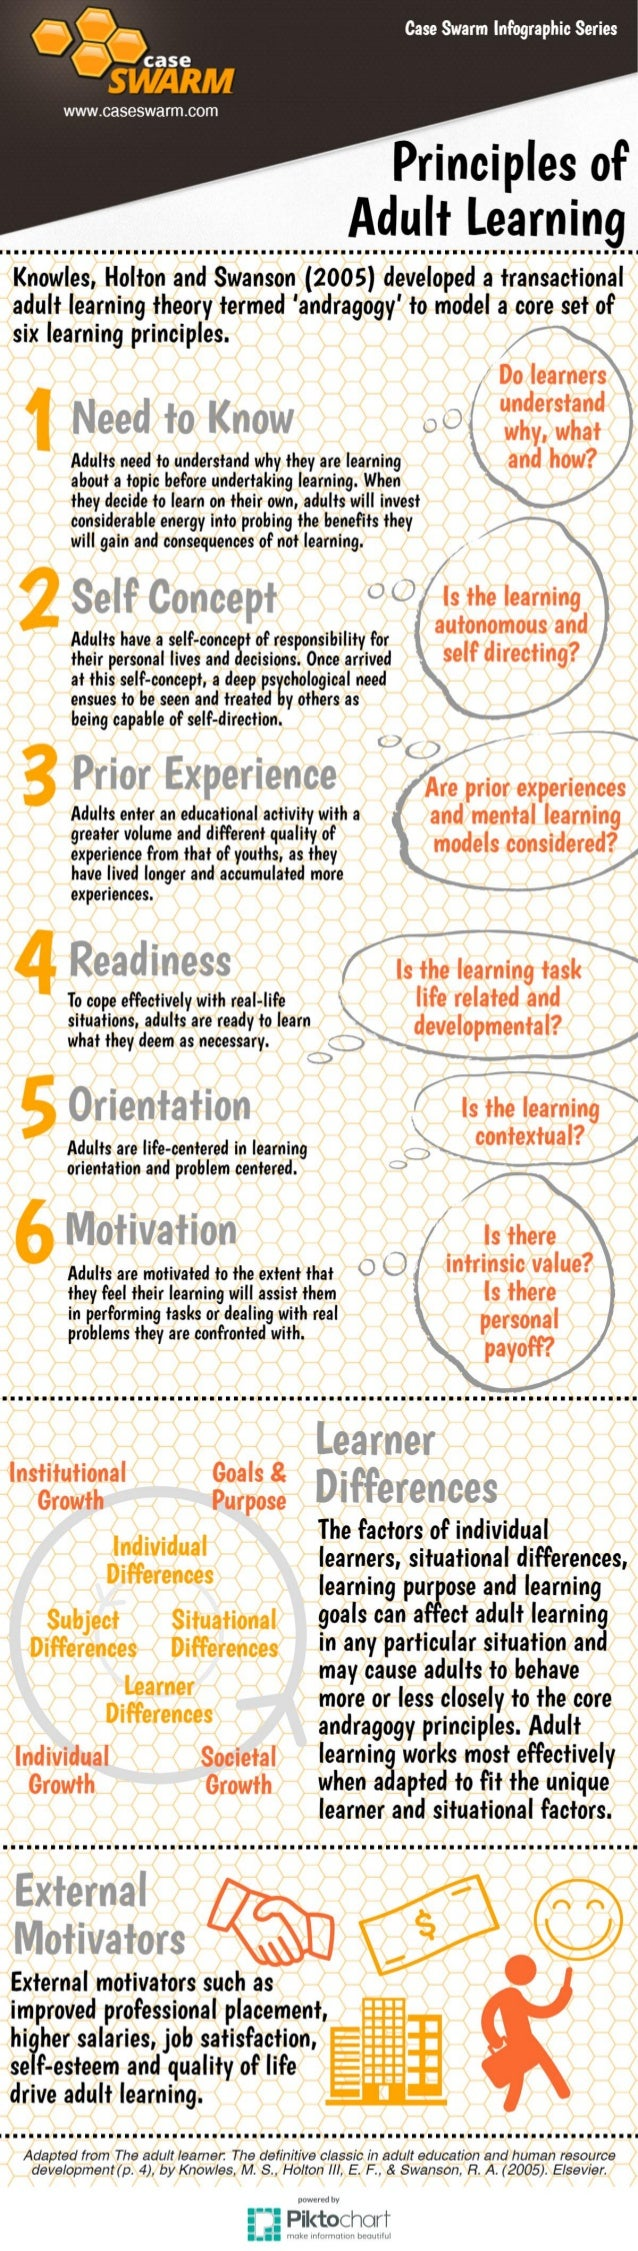 Infographic: Principles of Adult Learning